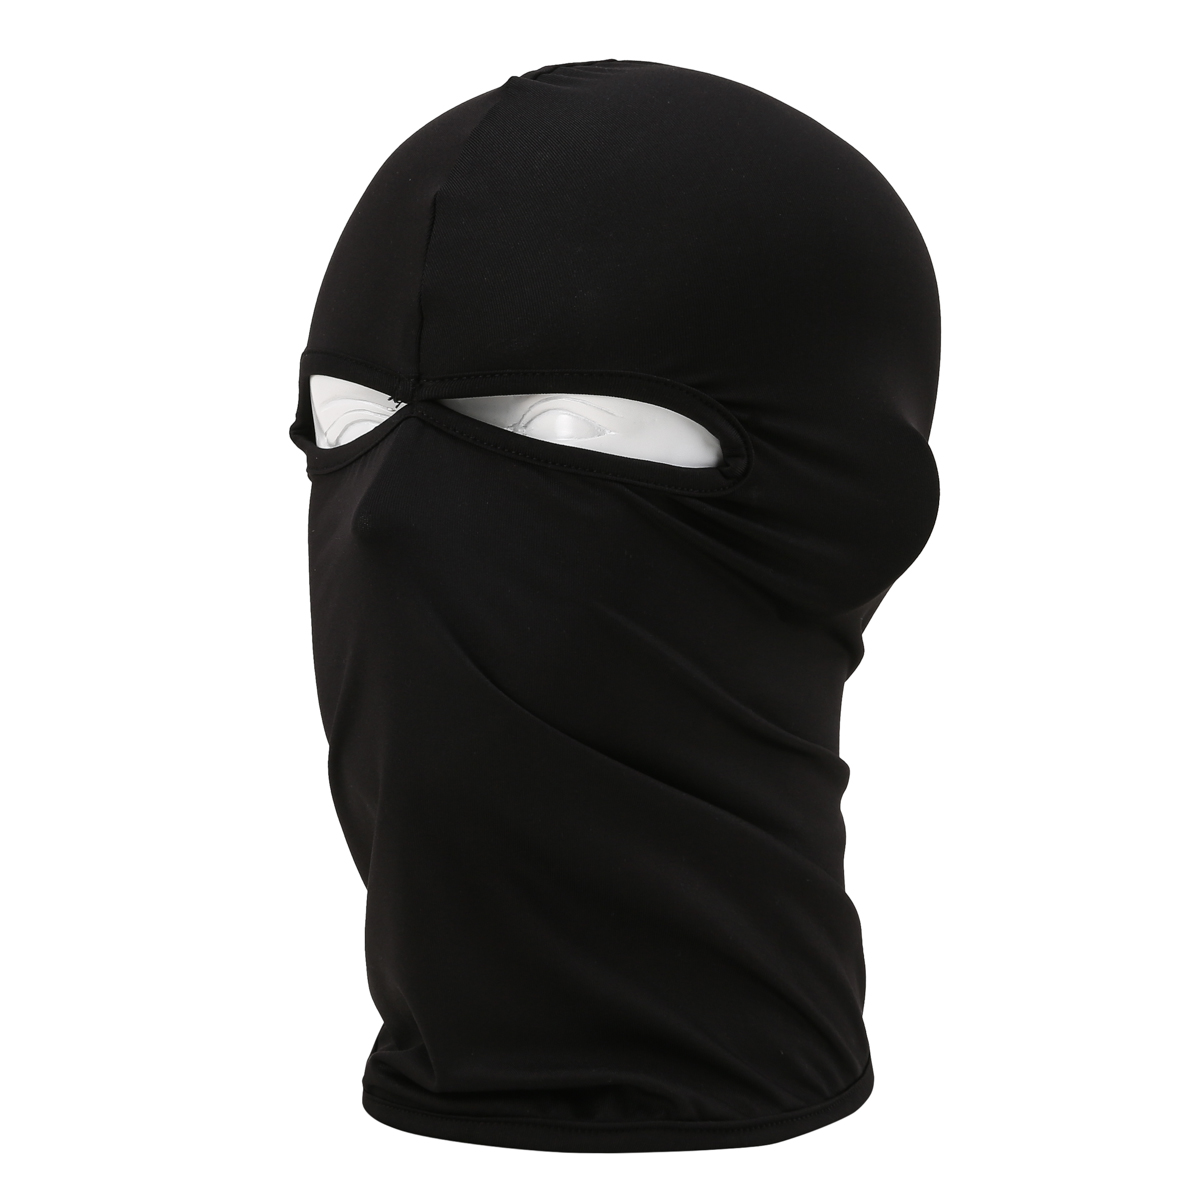 Free shipping! 2 Hole Full Face Mask Balaclava Hat Motorcycle Bike Hunting Cycling Cap Ski Military Tactal War ame Headgear(China (Mainland))